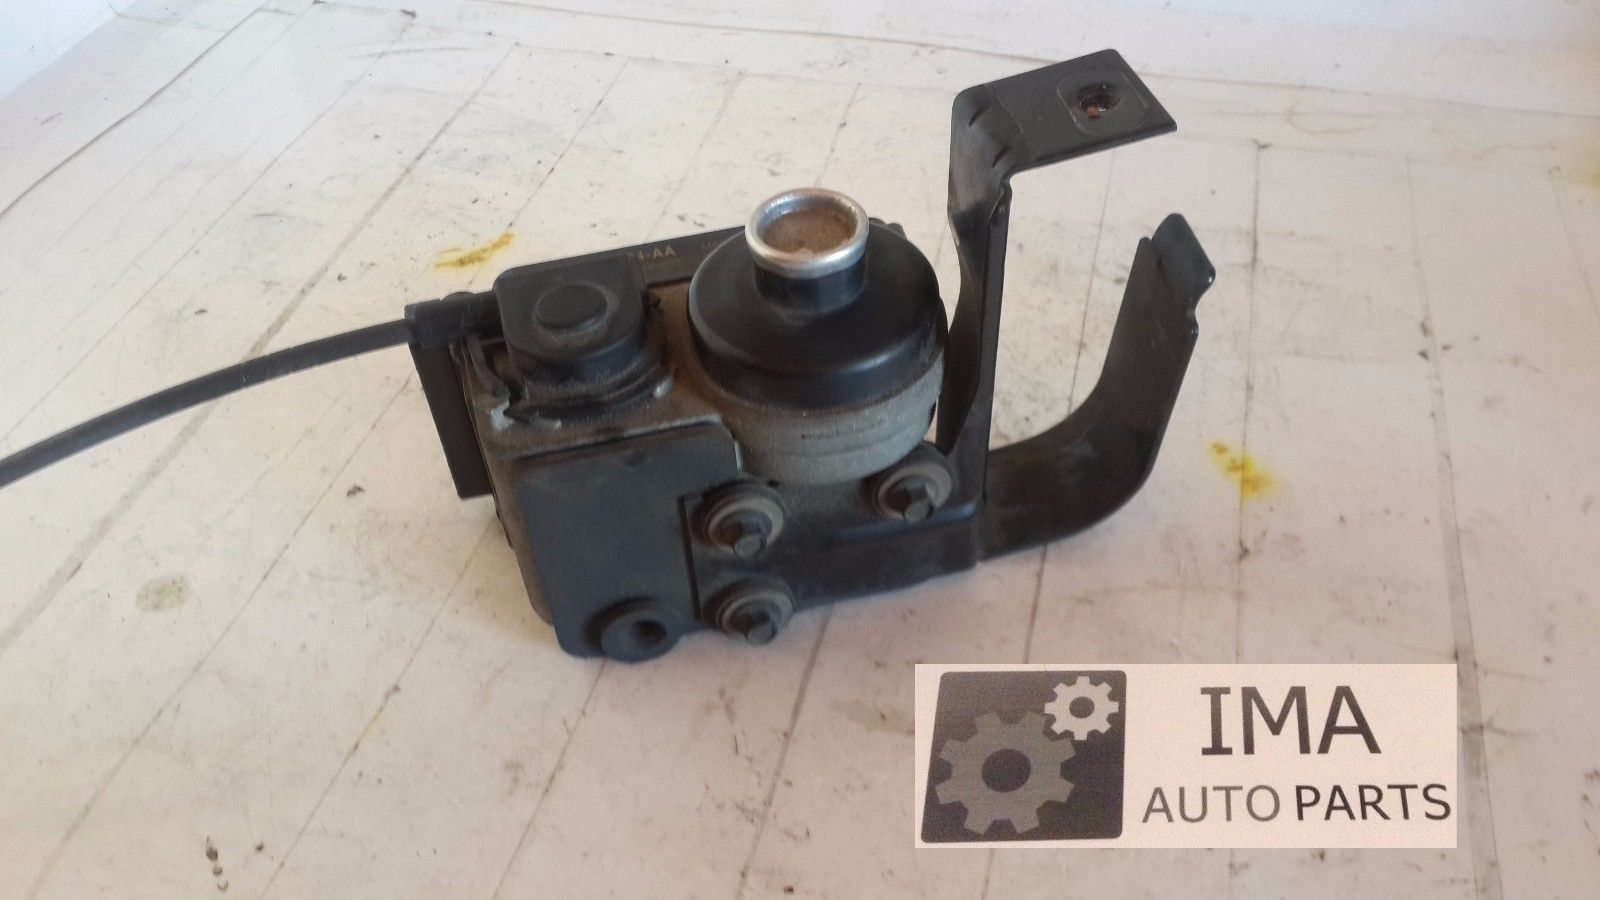 2002 FORD EXPLORER CRUISE CONTROL SERVO ASSEMBLY GENUINE 5F-9C735-AA